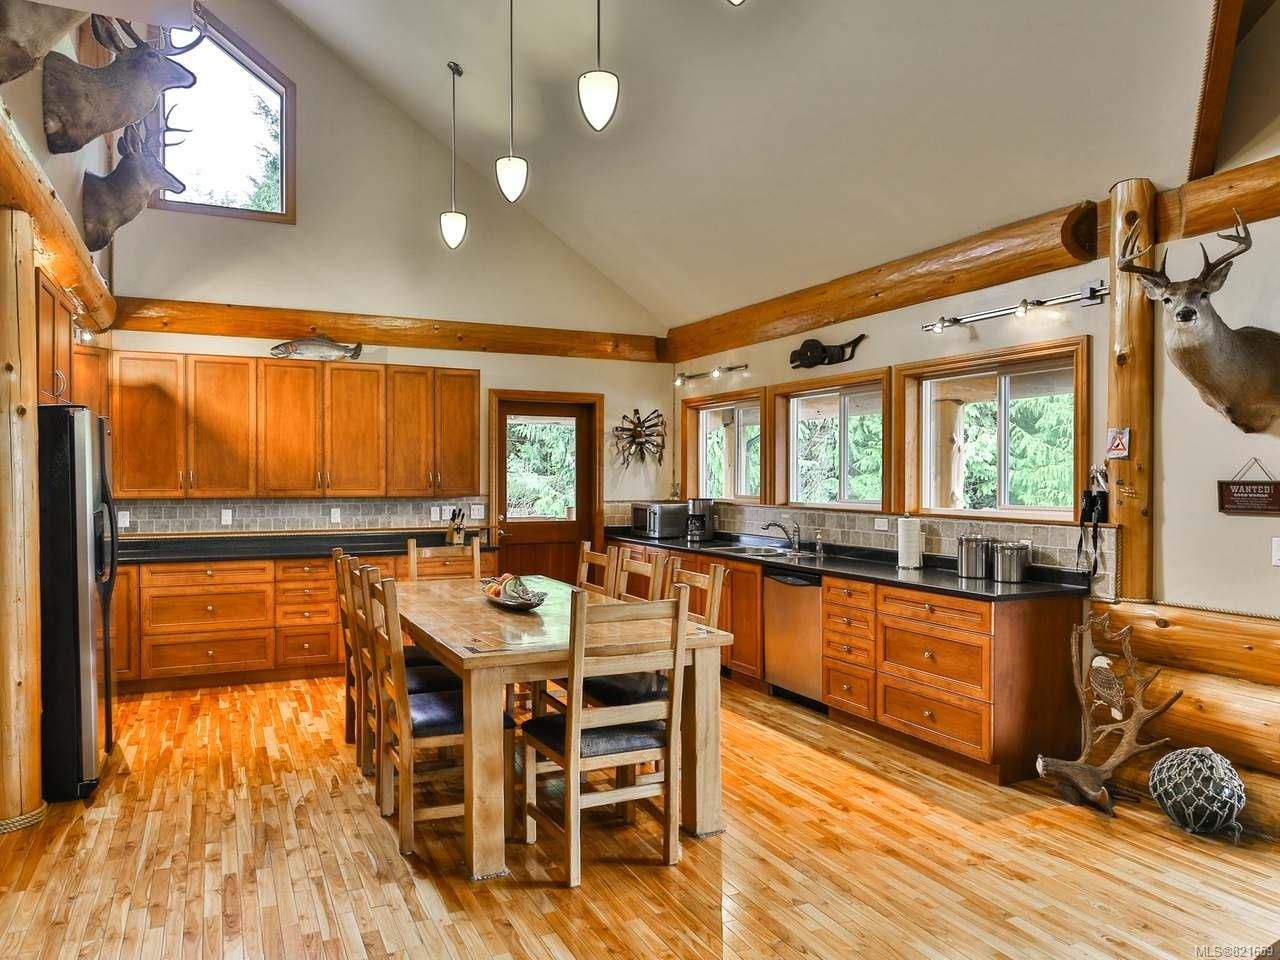 Photo 6: Photos: 1049 Helen Rd in UCLUELET: PA Ucluelet House for sale (Port Alberni)  : MLS®# 821659